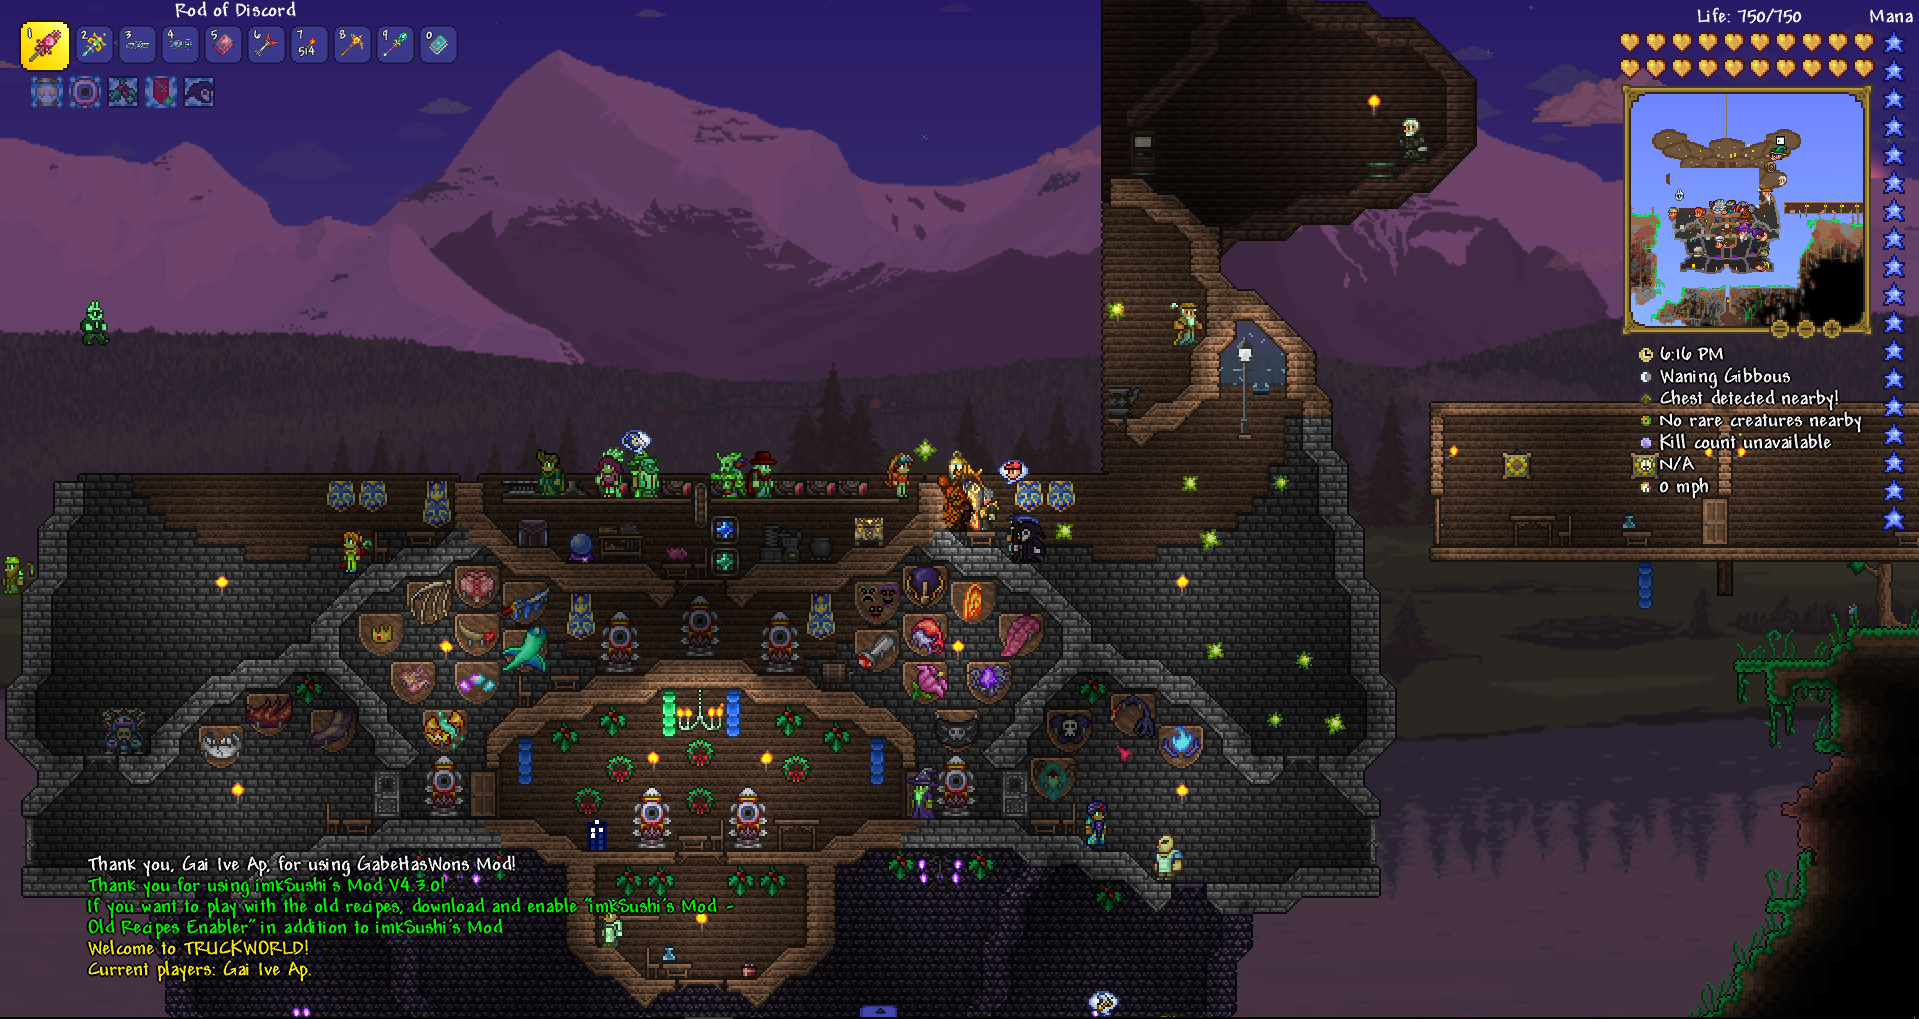 Large chunk of house doesn't load in multiplayer (modded) : Terraria